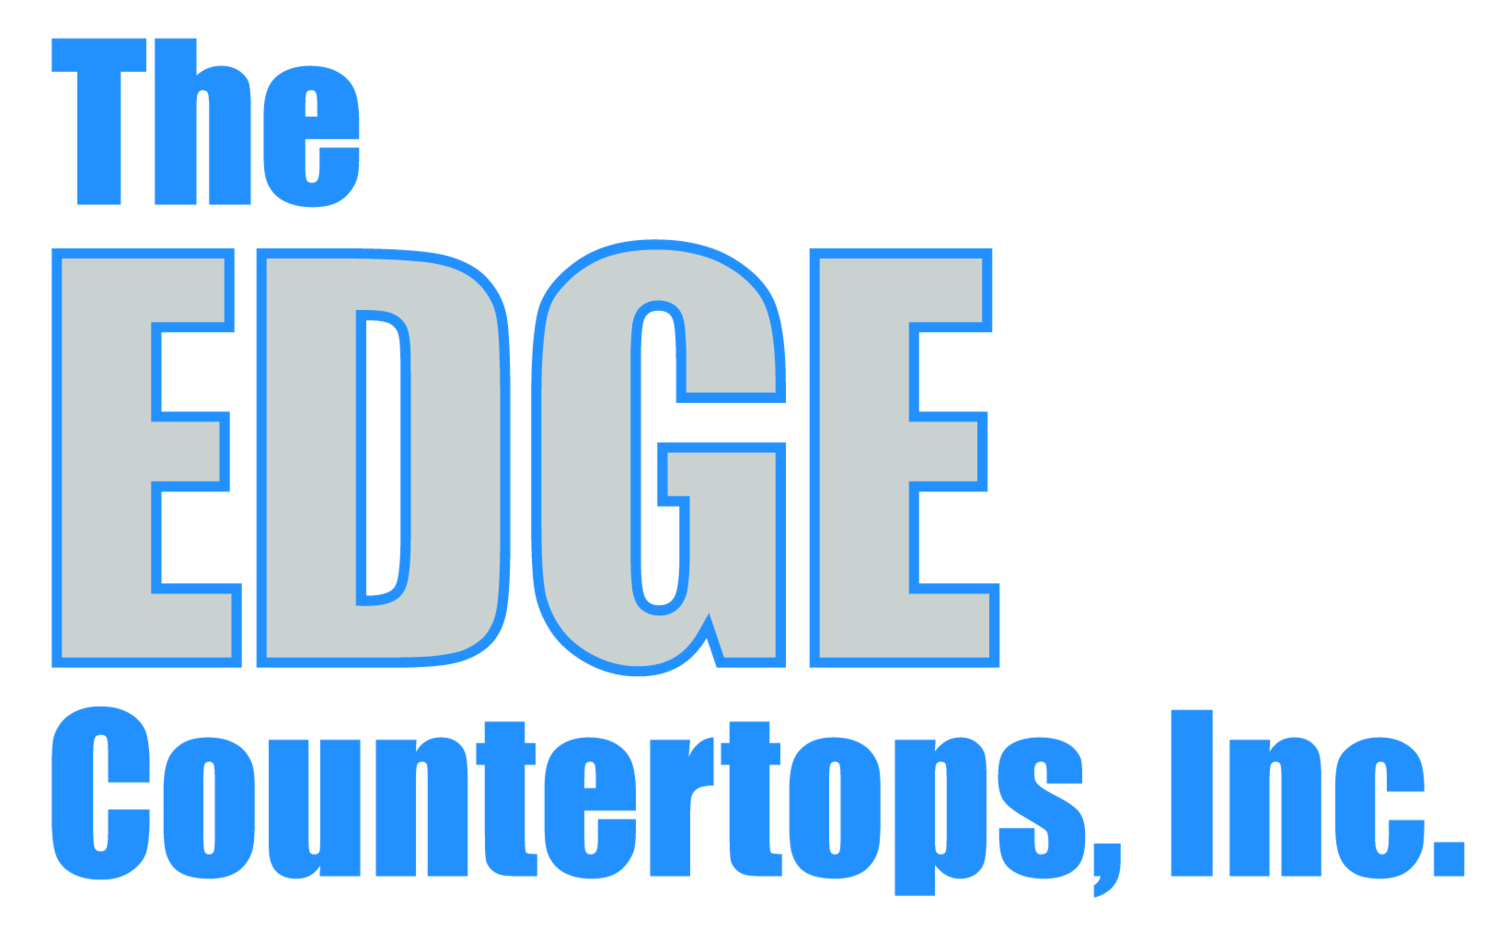 The Edge Countertops